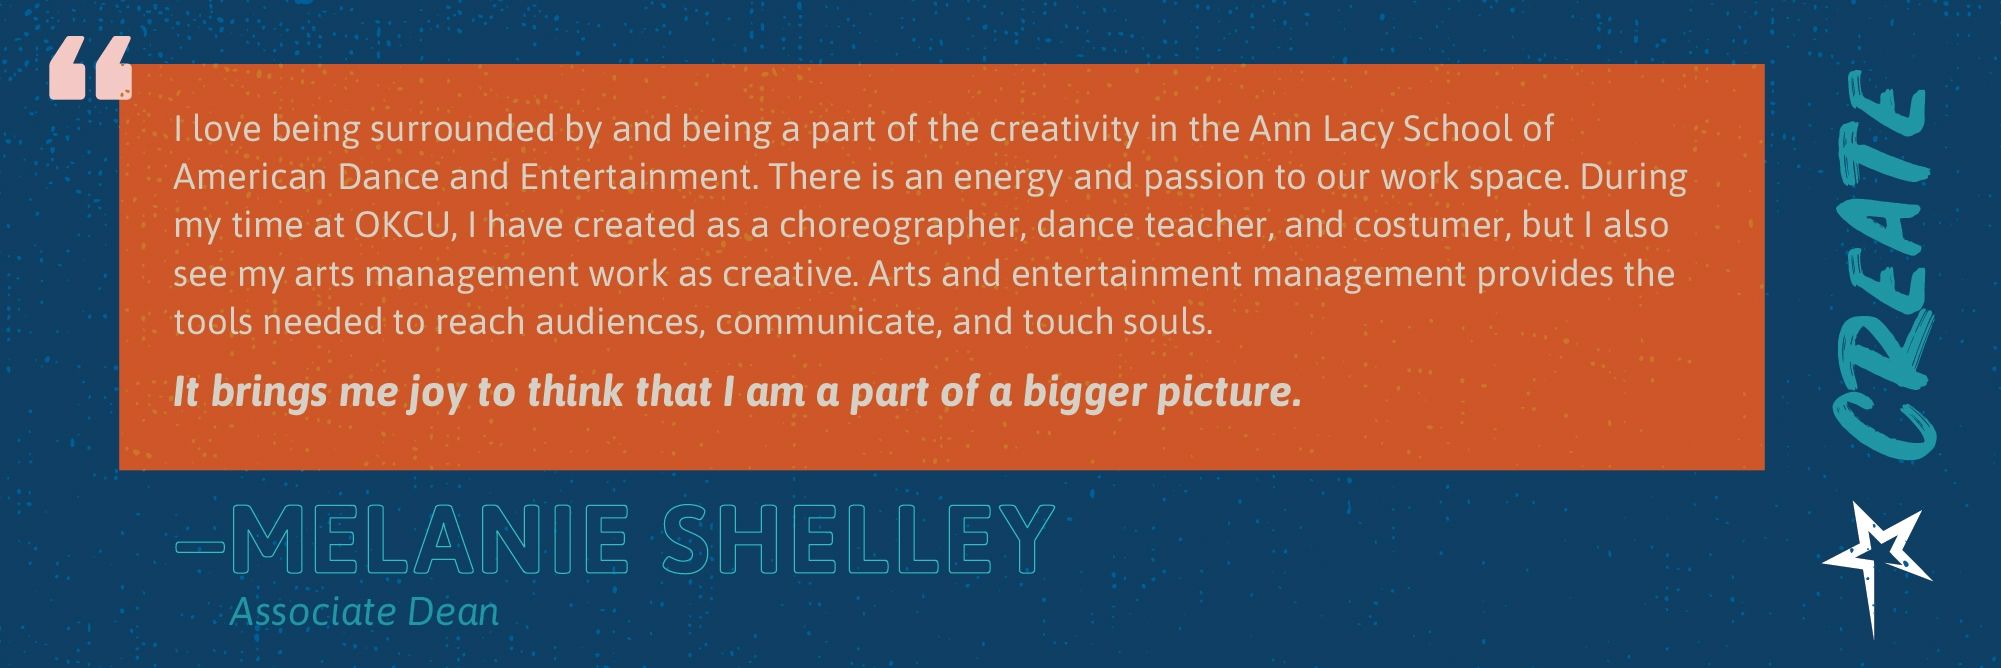 "Create: ""I love being surrounded by and being a part of the creativity in the Ann Lacy School of American Dance and Entertainment. There is an energy and passion to our work space. During my time at OKCU, I have created as a choreographer, dance teacher, and costumer, but I also see my arts management work as creative. Arts and entertainment management provides the tools needed to reach audiences, communicate, and touch souls. It brings me joy to think that I am a part of a bigger picture."" —Melanie Shelley, Associate Dean"